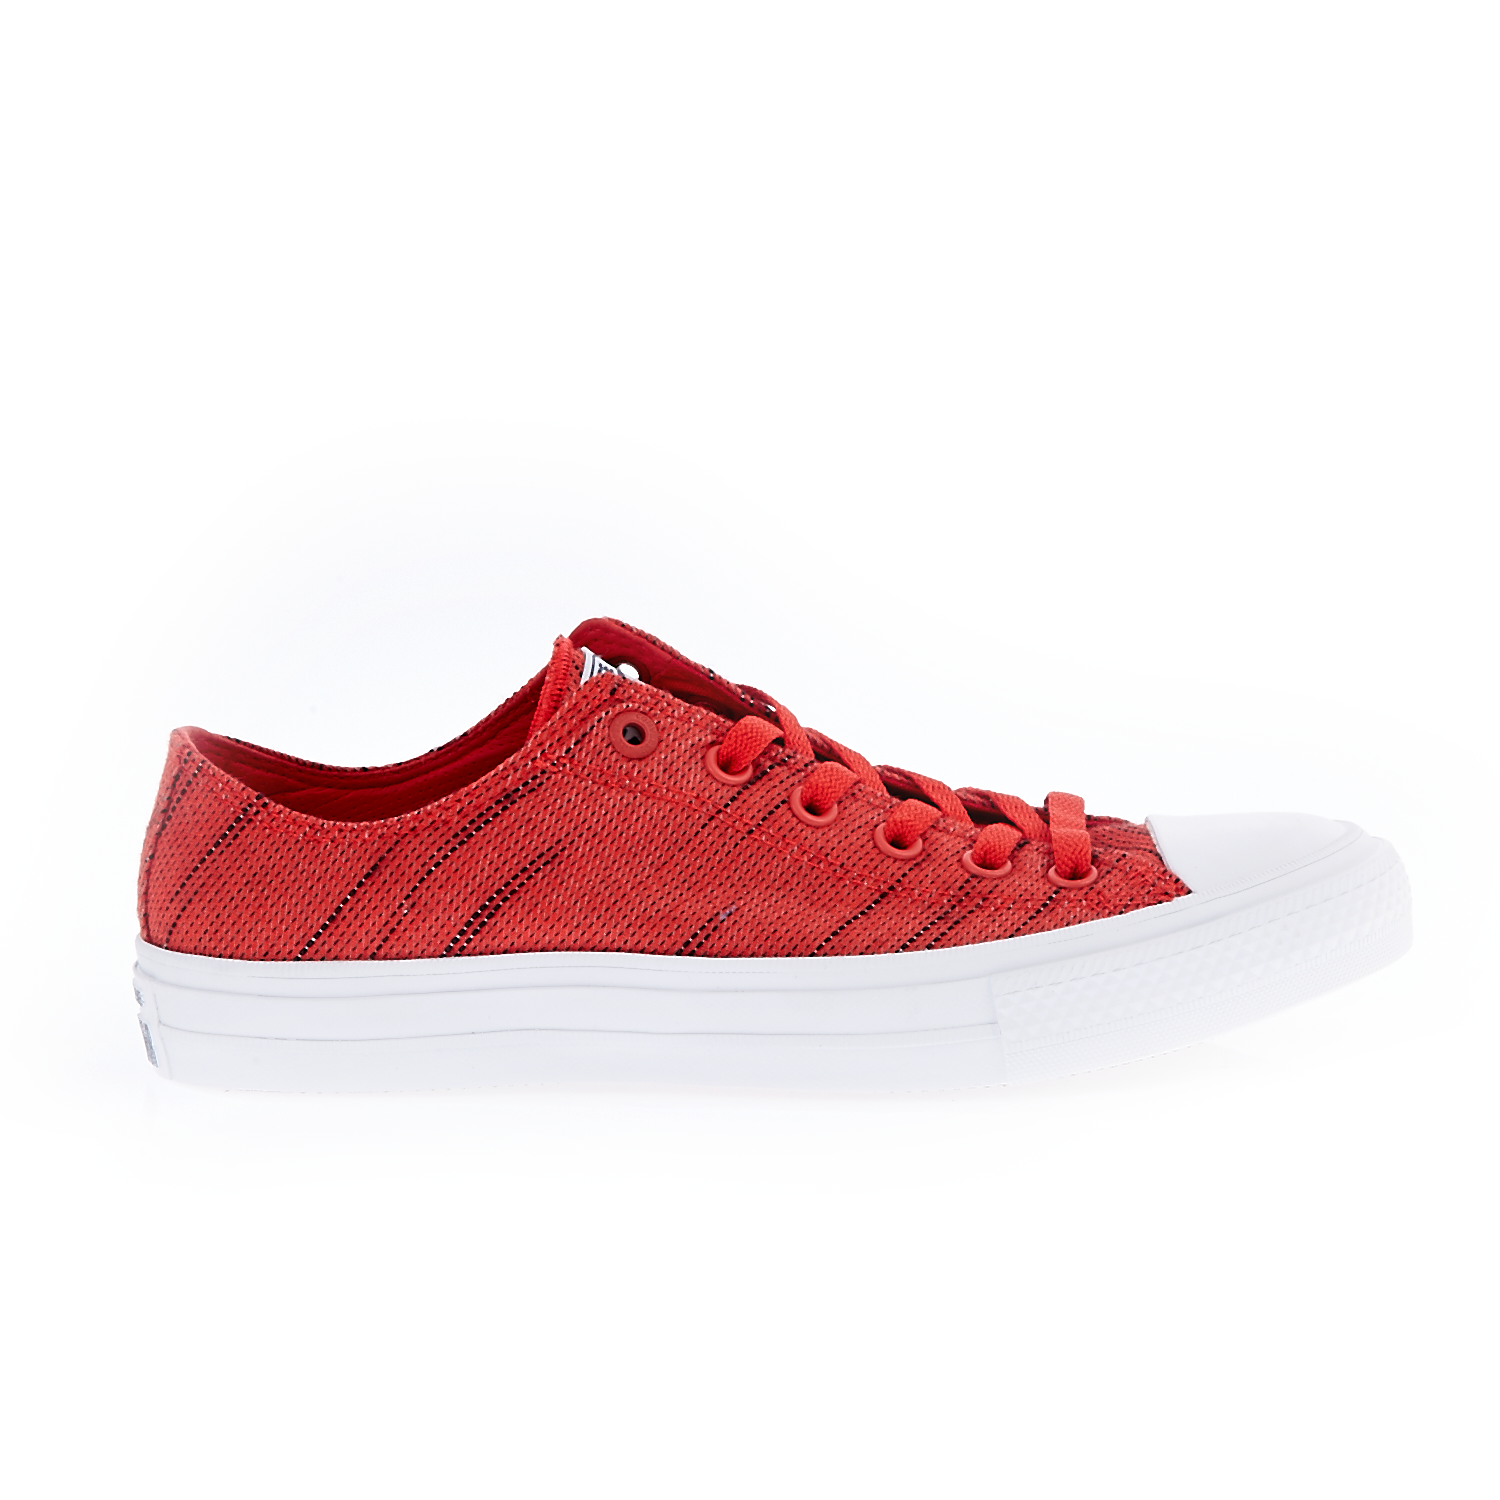 CONVERSE - Unisex παπούτσια Chuck Taylor All Star II Ox κόκκινα ανδρικά παπούτσια sneakers